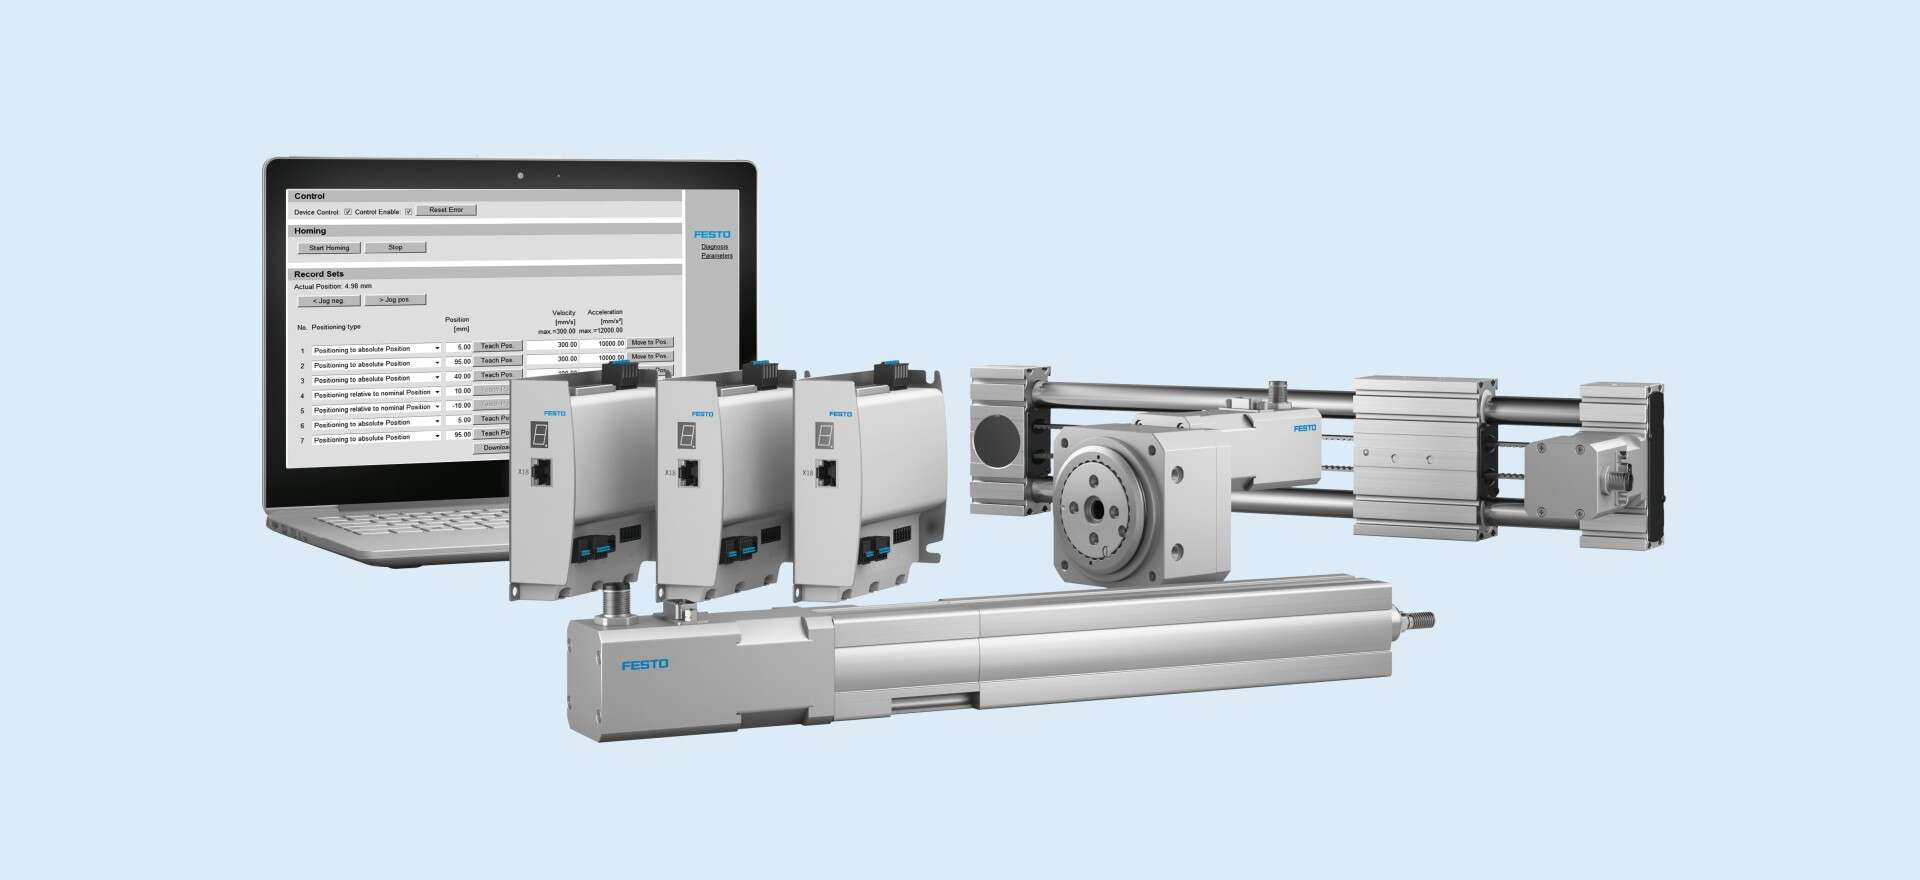 Electrical positioning system: Optimized Motion Series